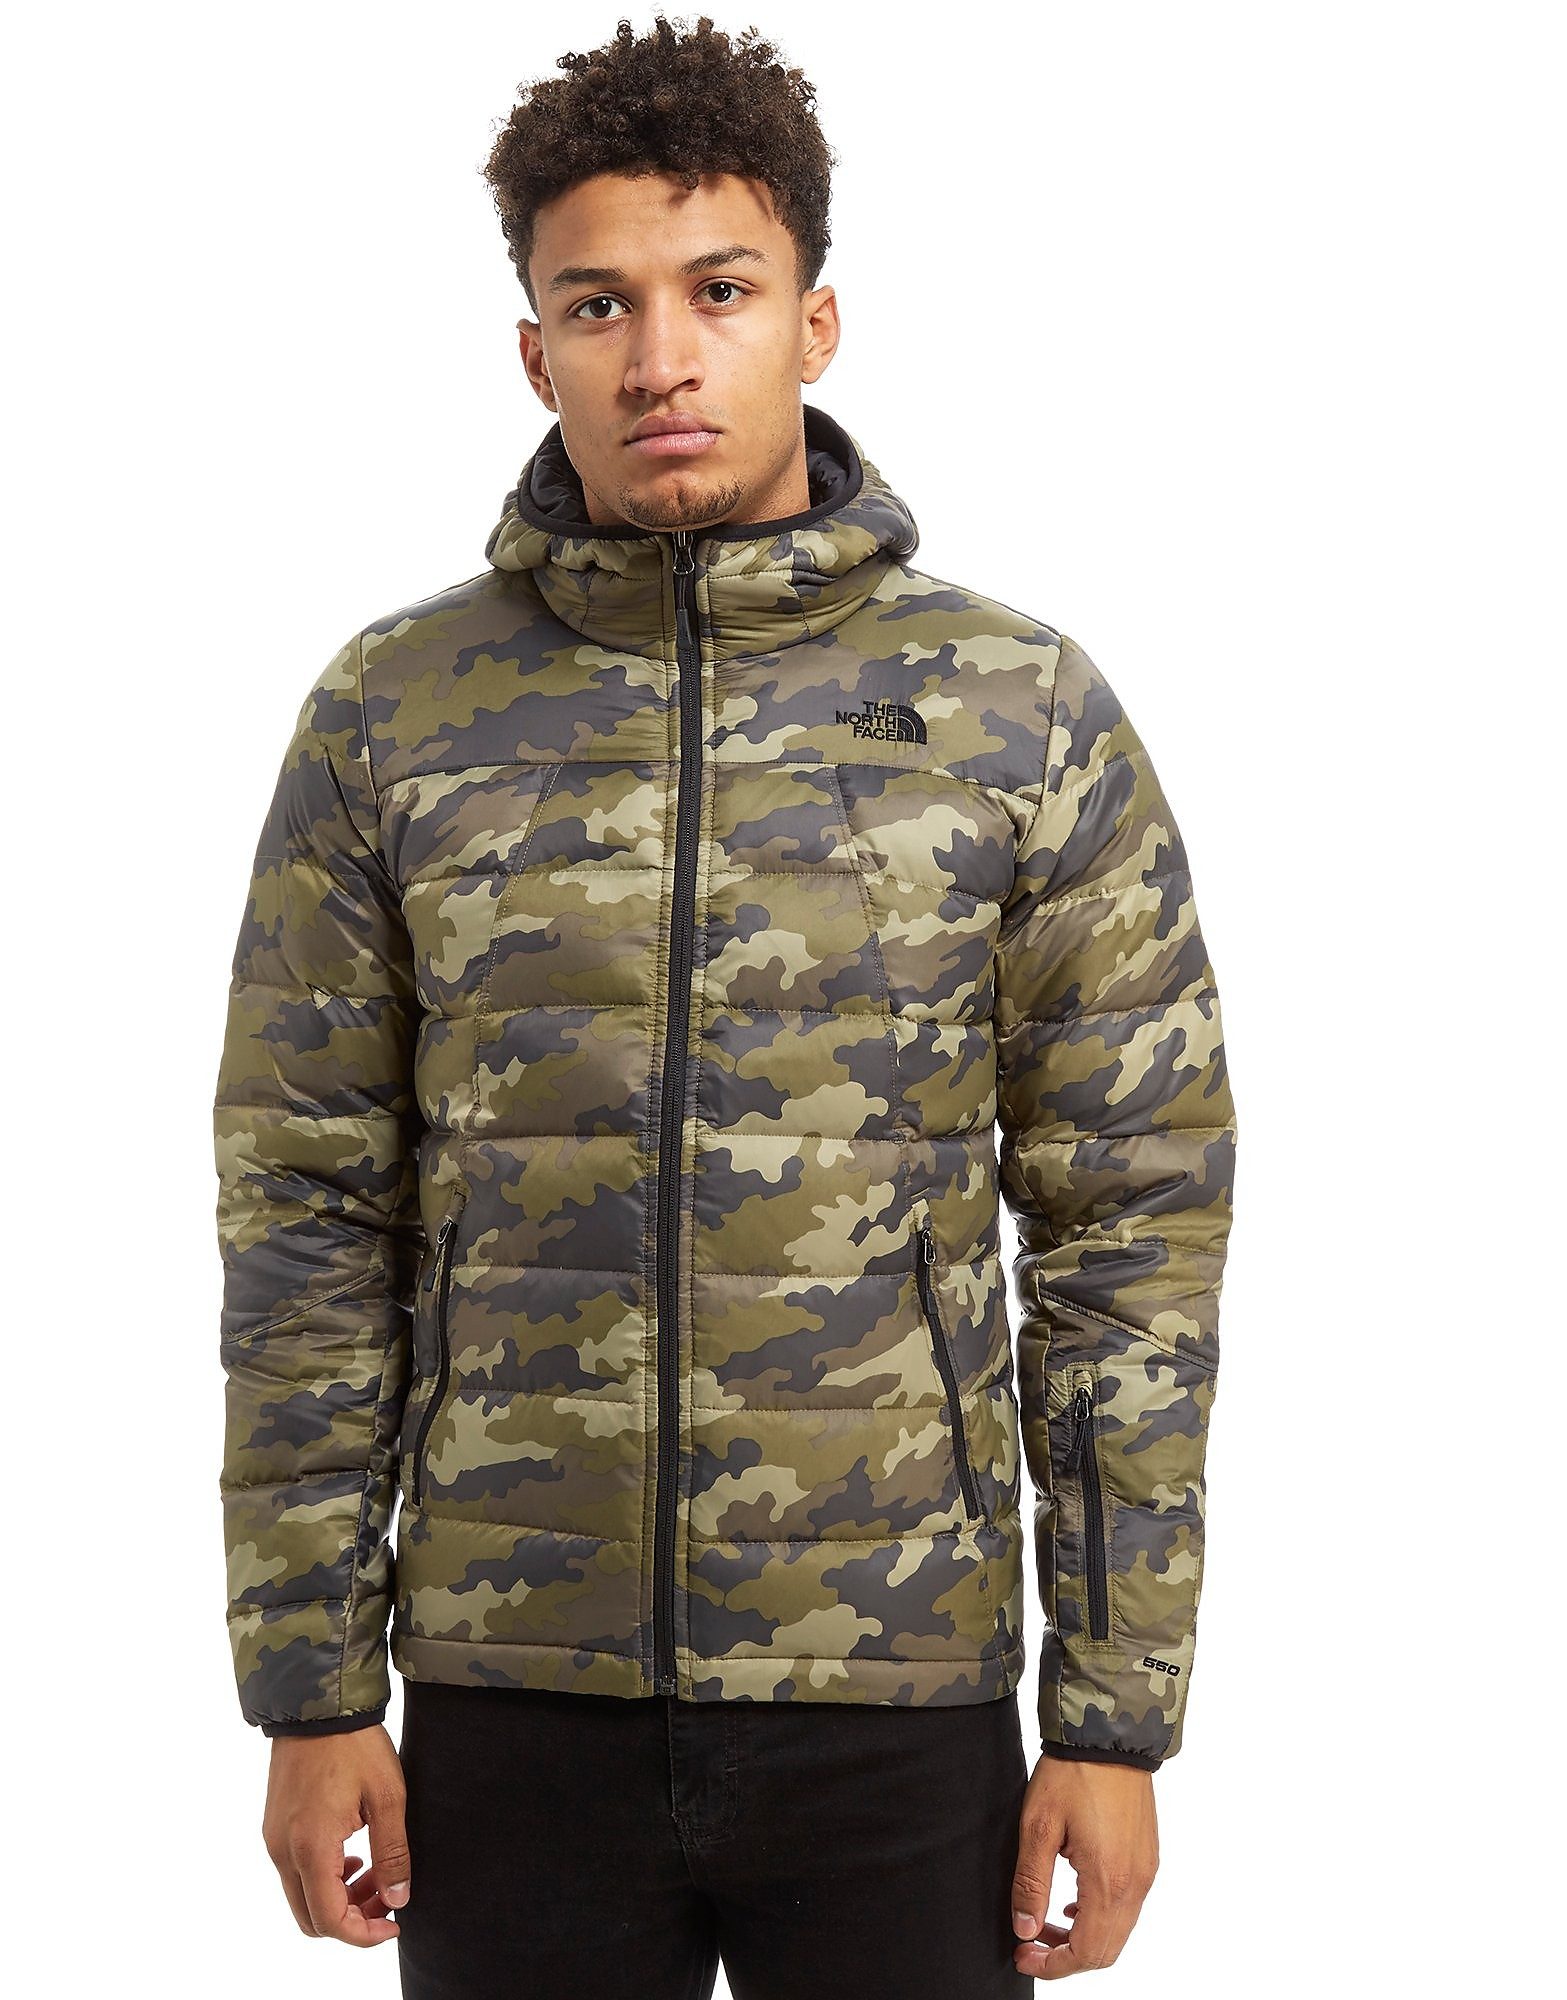 The North Face Shark Daunen Gepolsterte Jacke